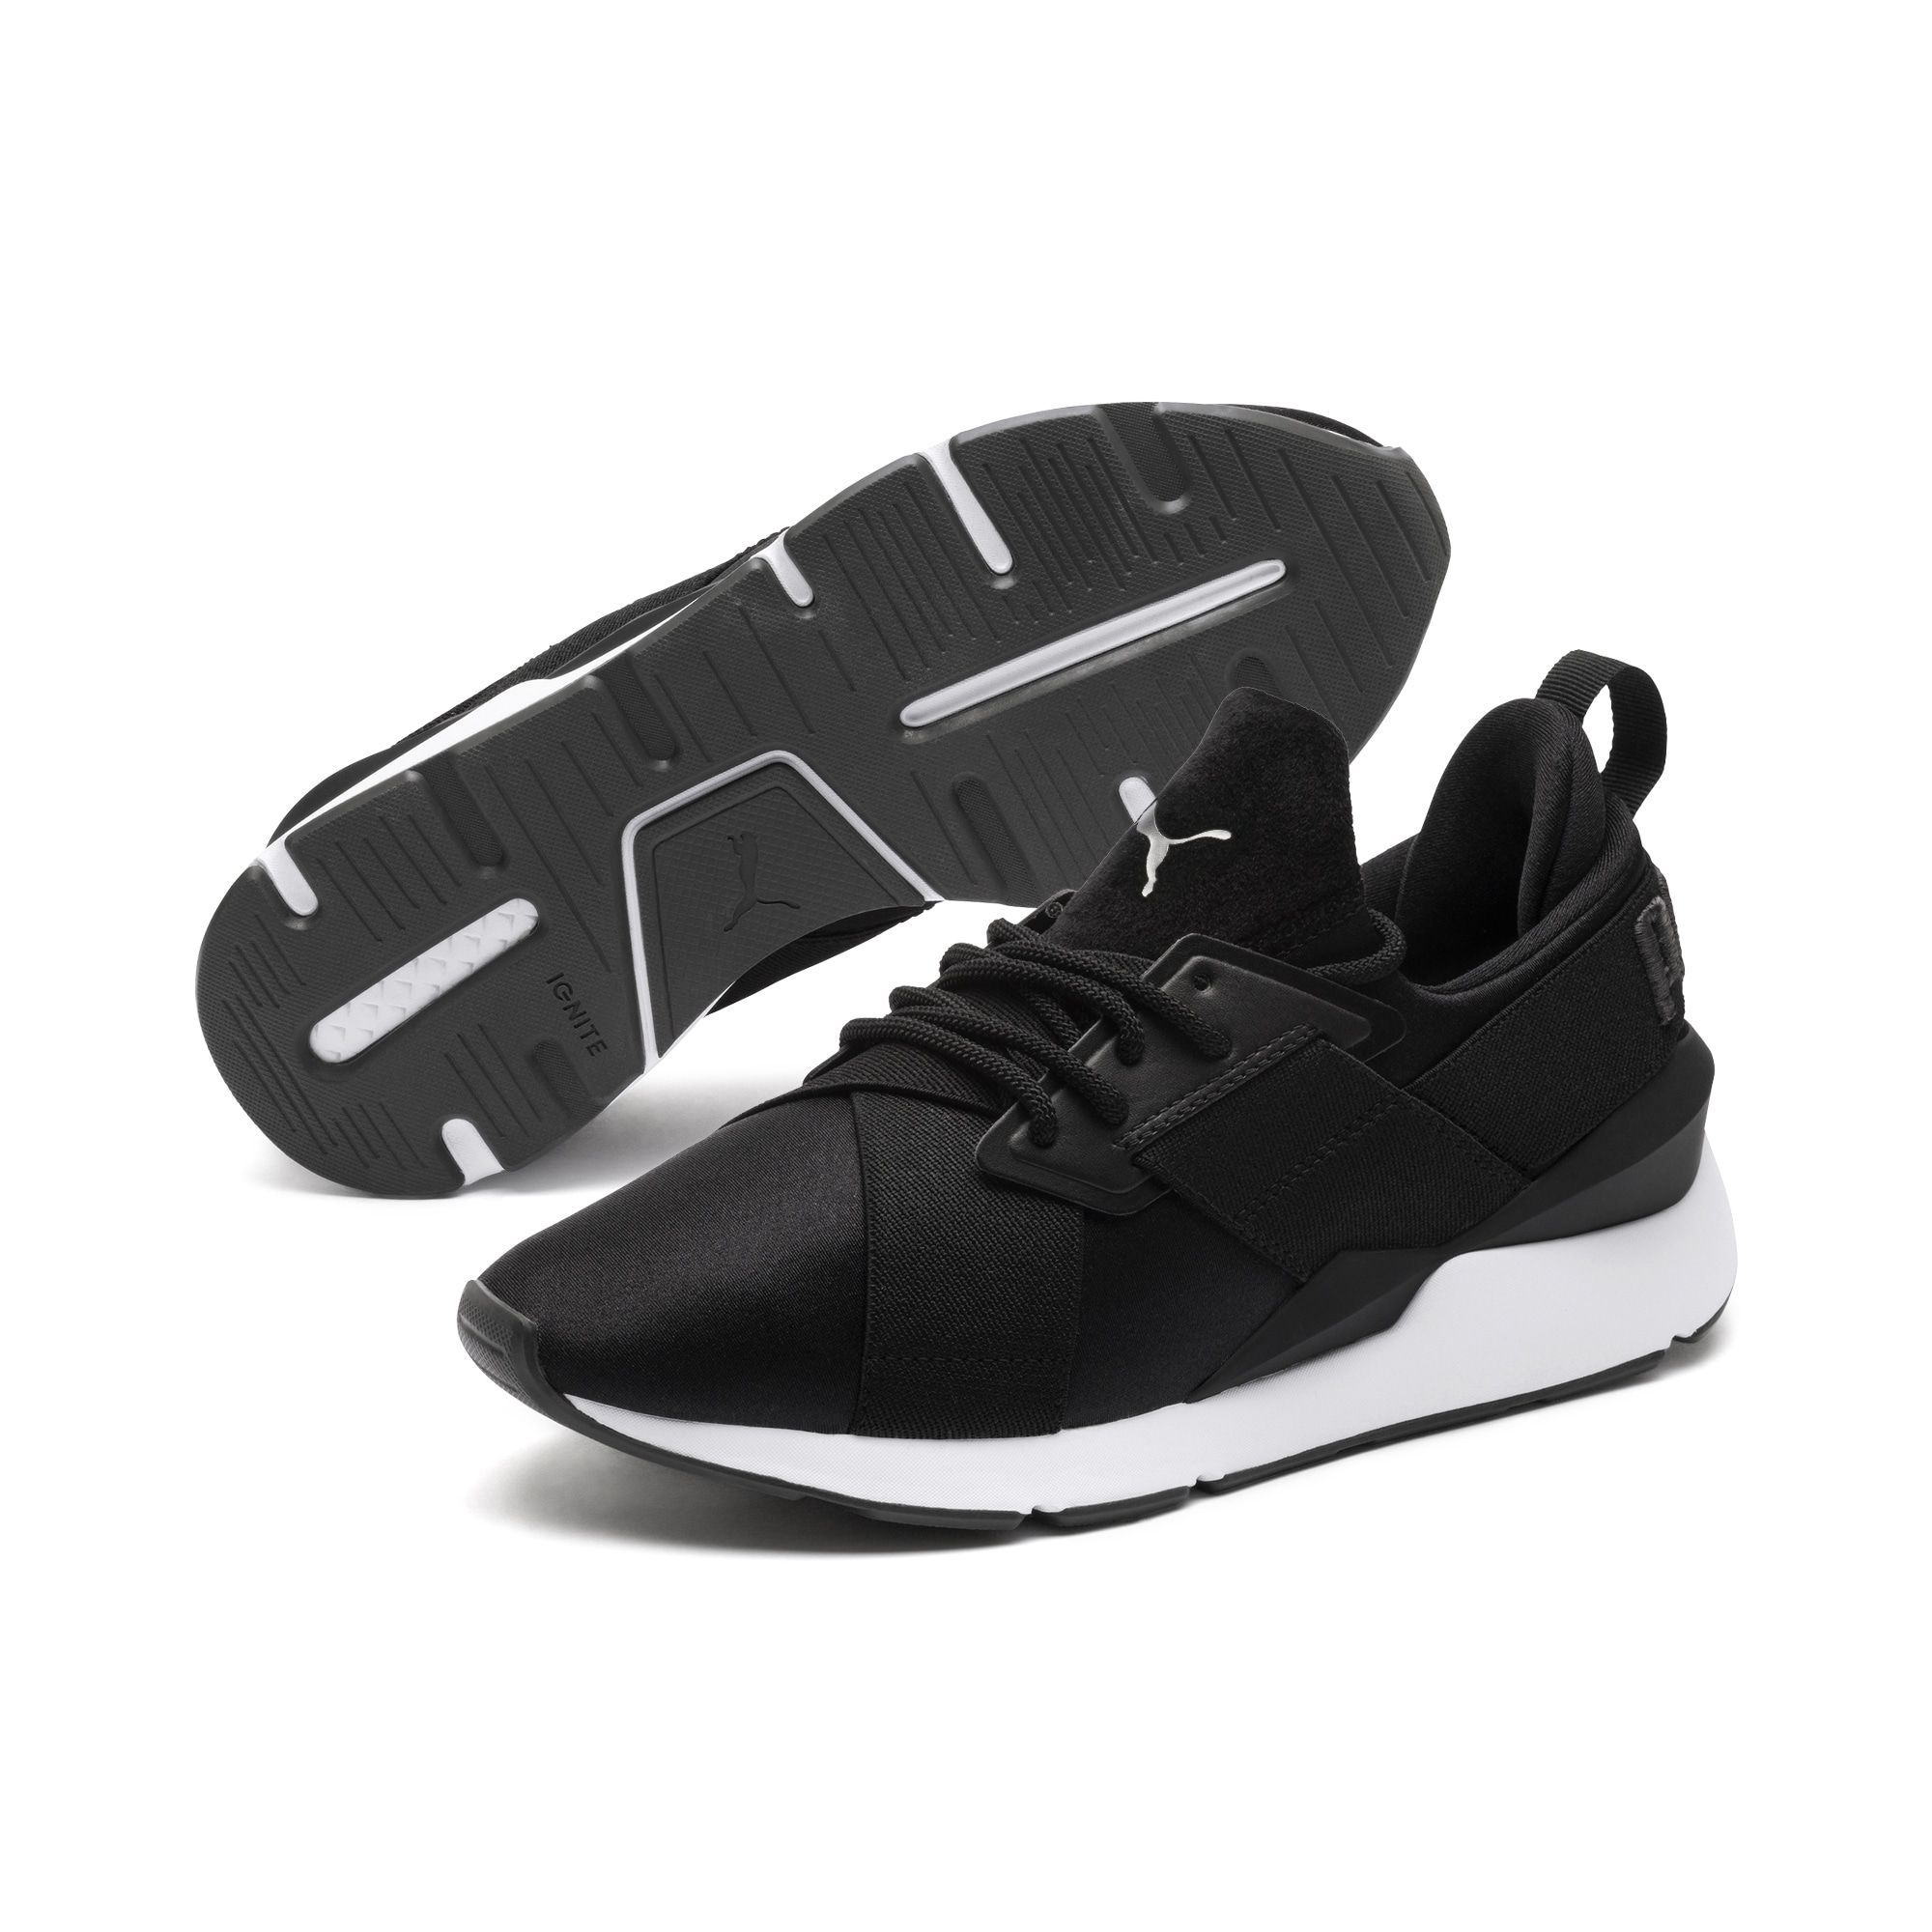 Puma Sneaker Muse Satin Ii Wns Damen Schwarz Grosse 36 36 5 Womens Sneakers Leather Shoes Woman Womens Athletic Shoes